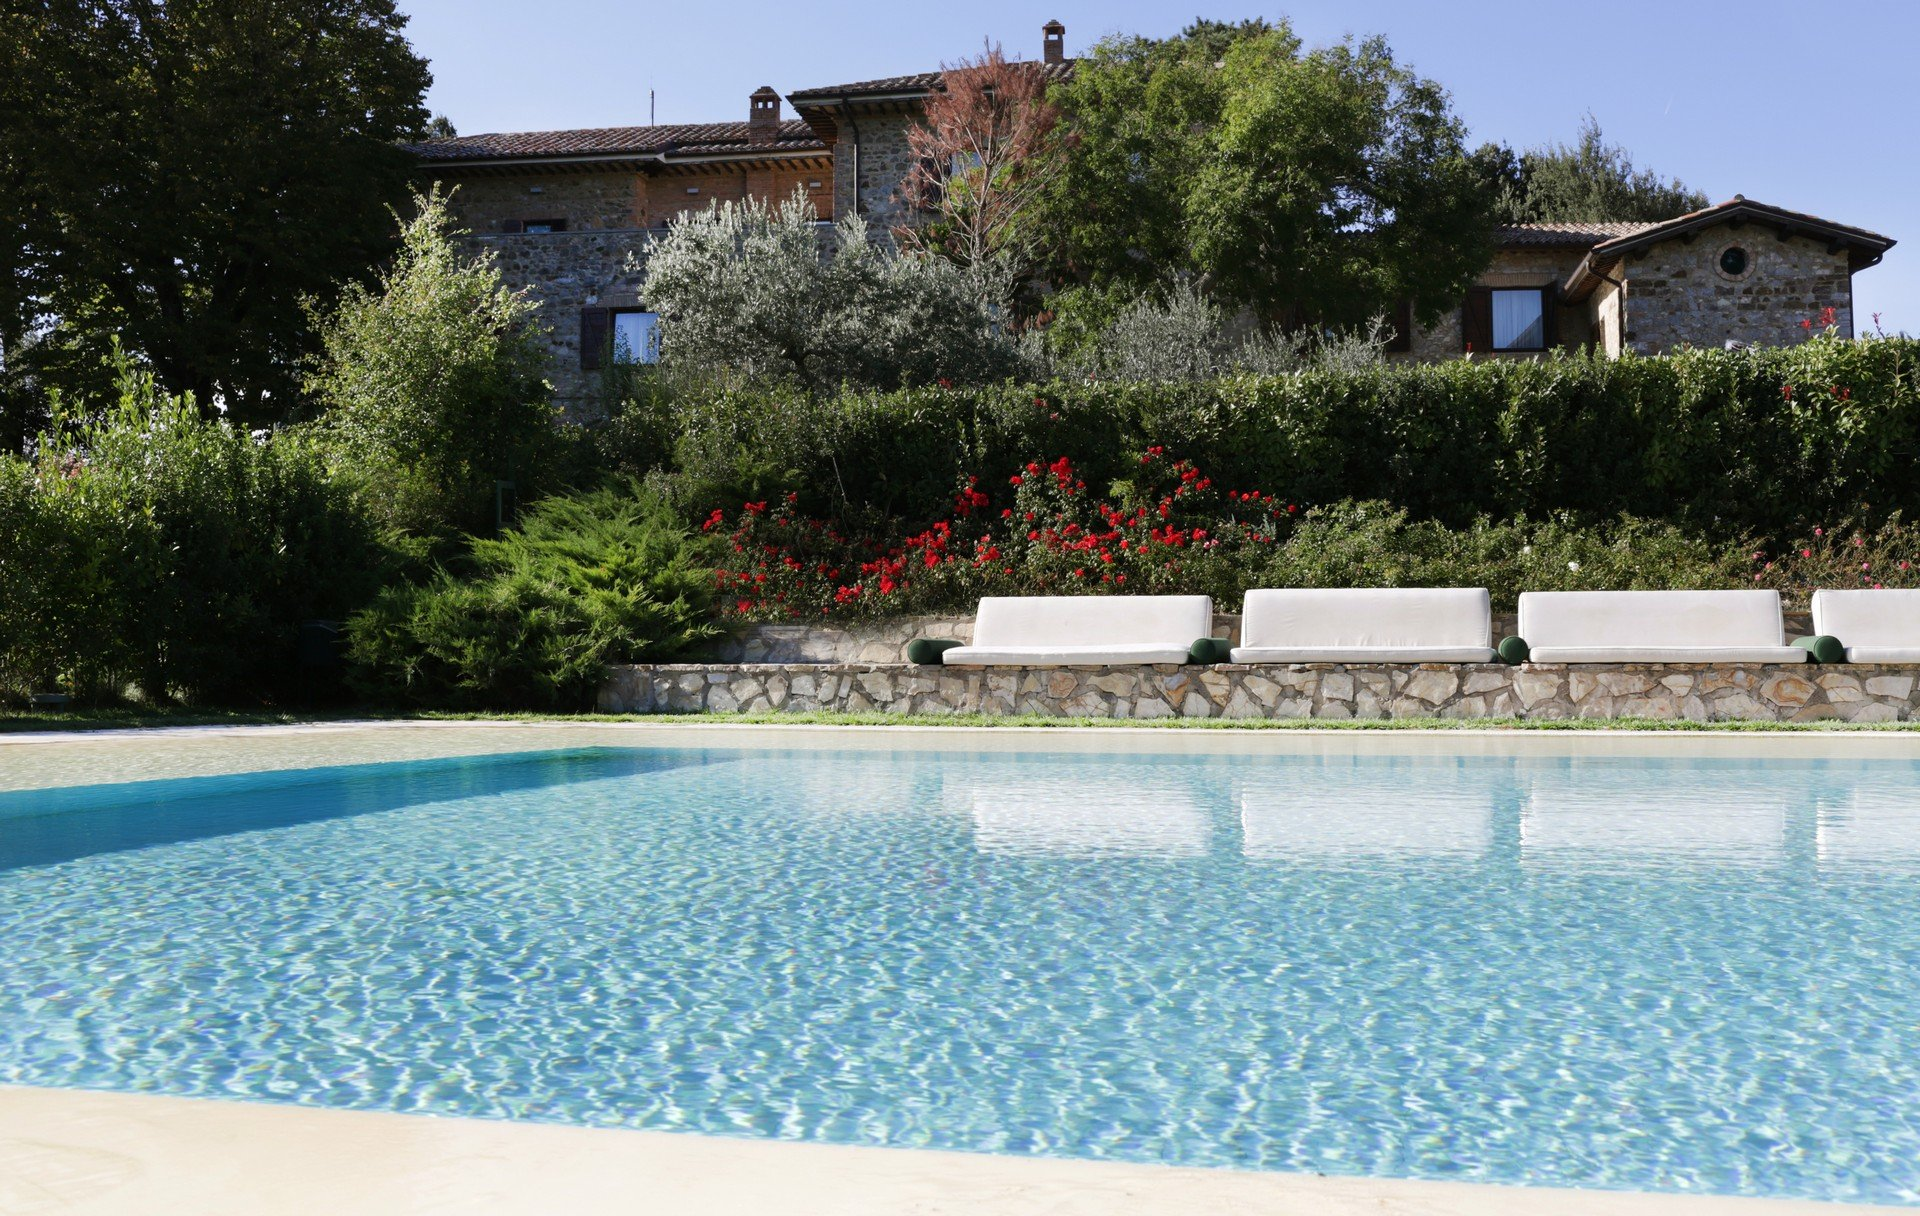 Agriturismo resort con piscina in umbria griffin 39 s resort - Agriturismo con piscina perugia ...